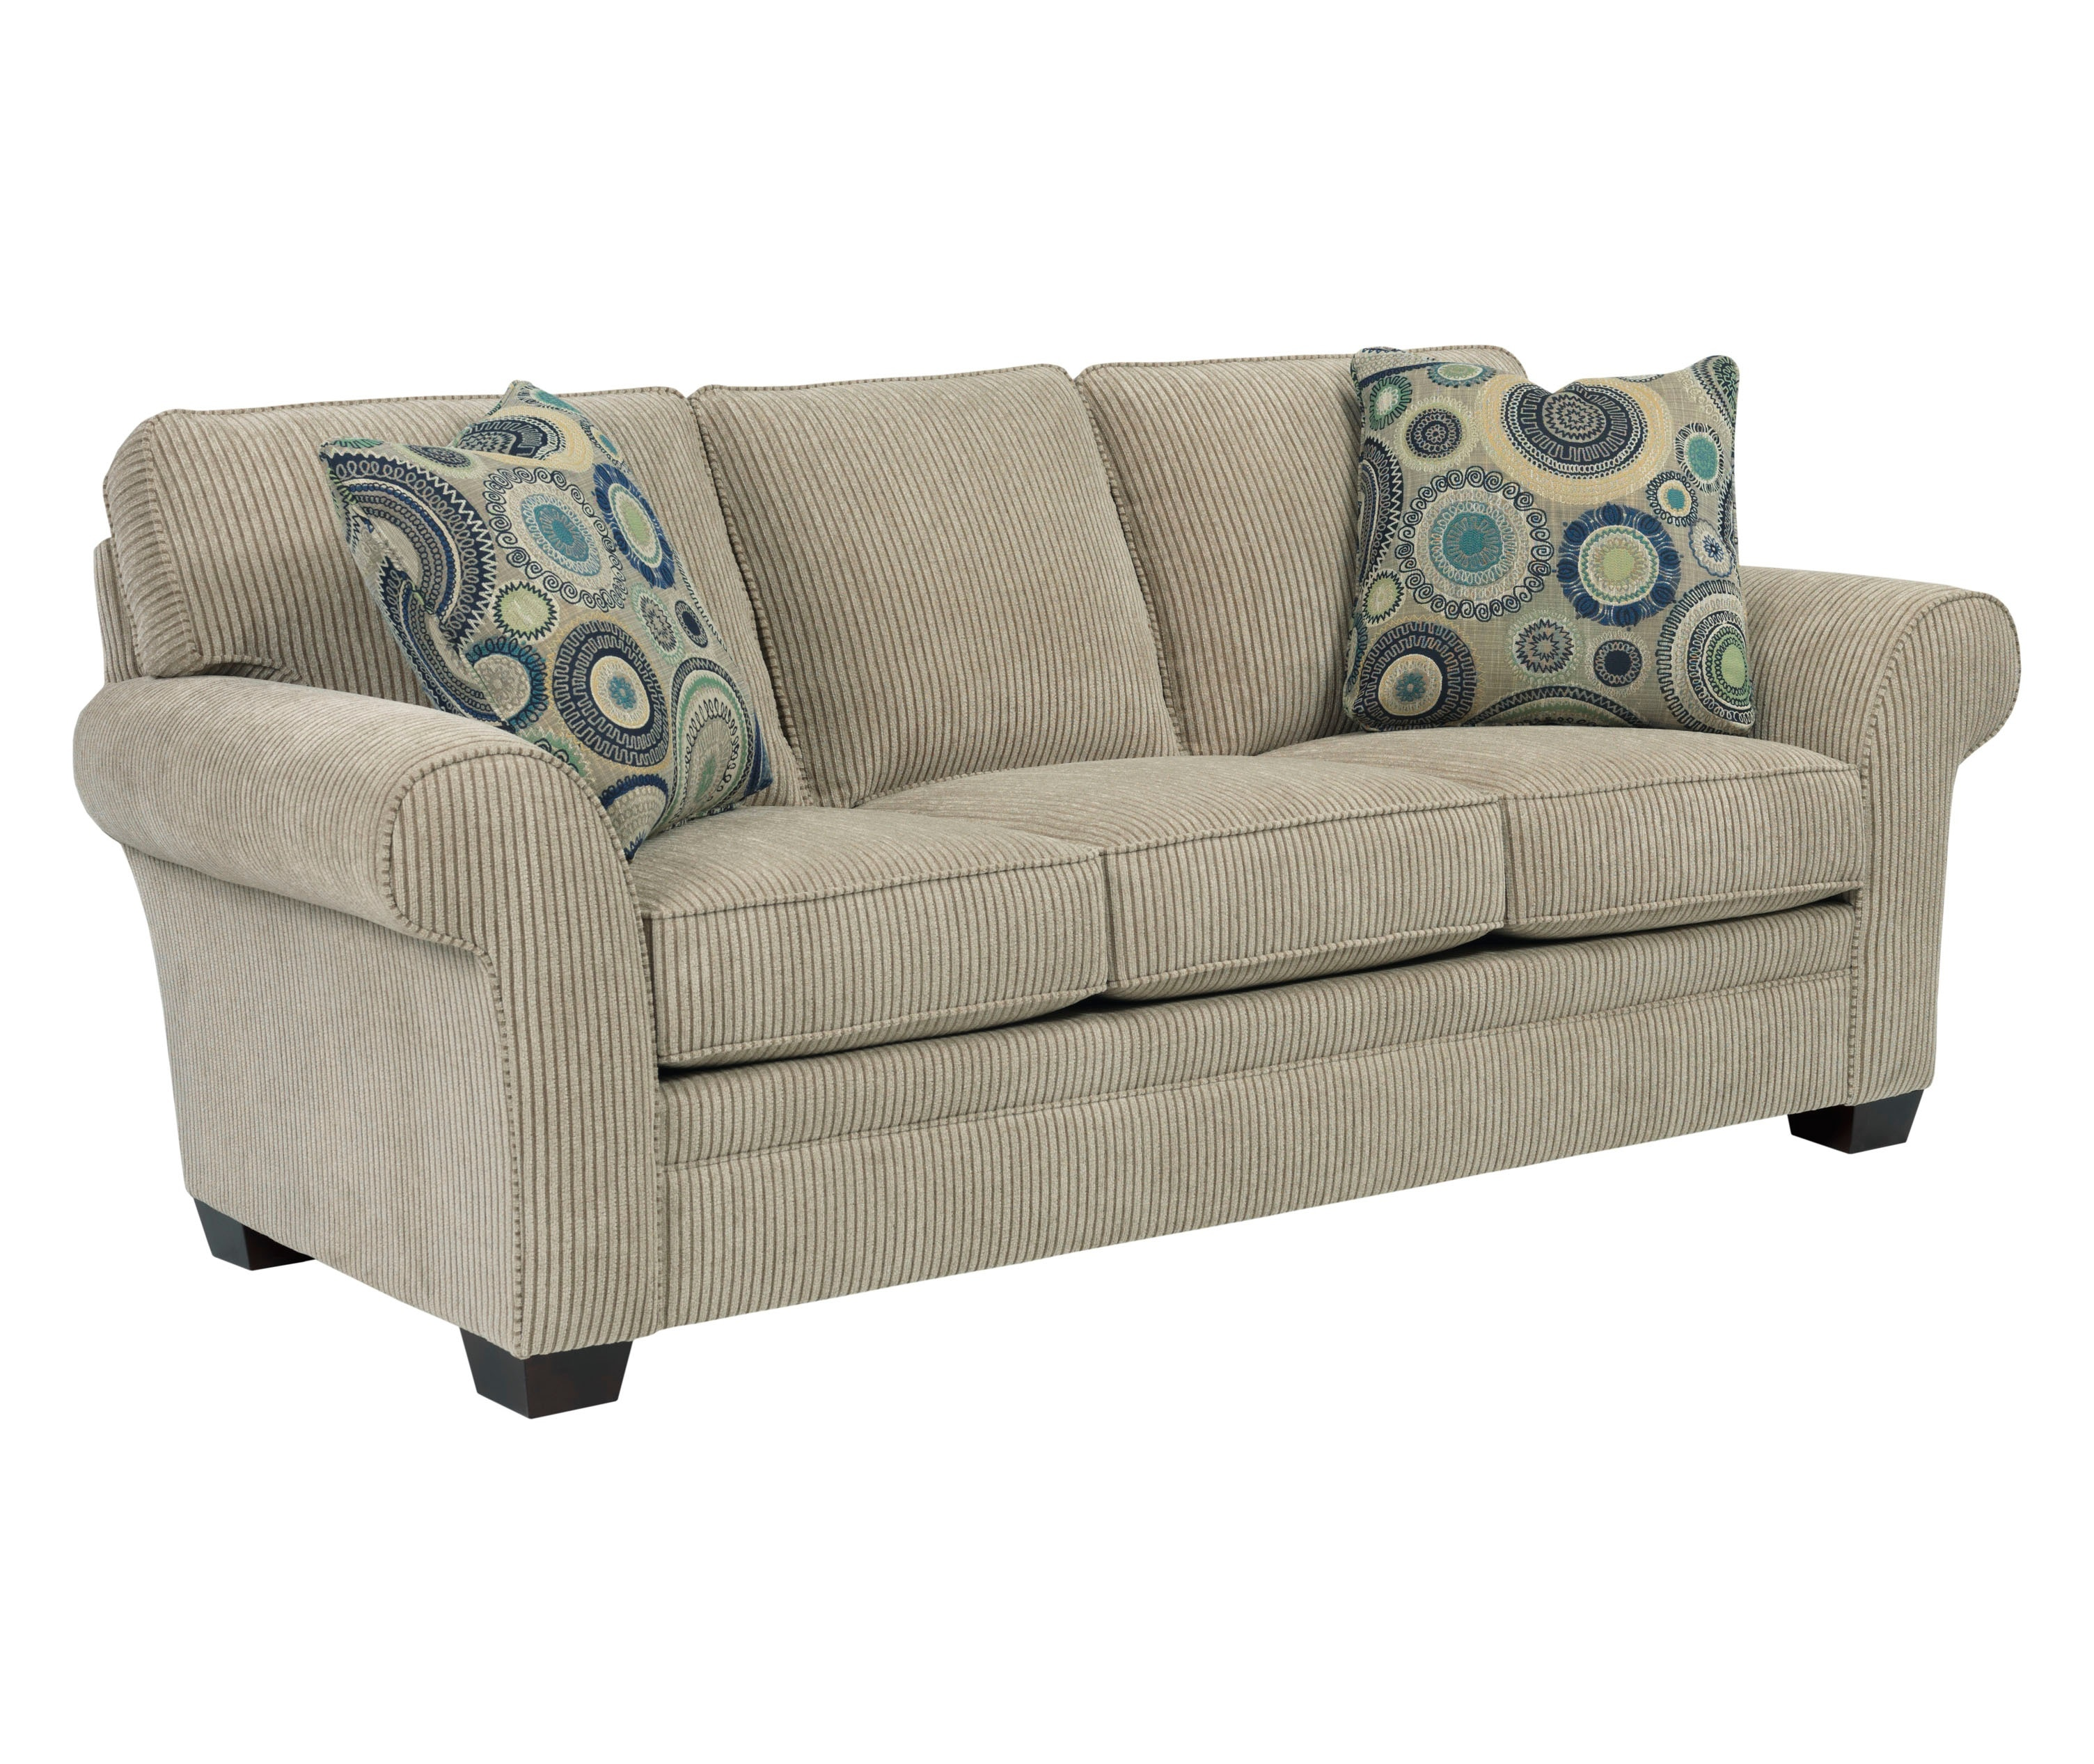 Broyhill Zachary Sofa With Pillows 503325